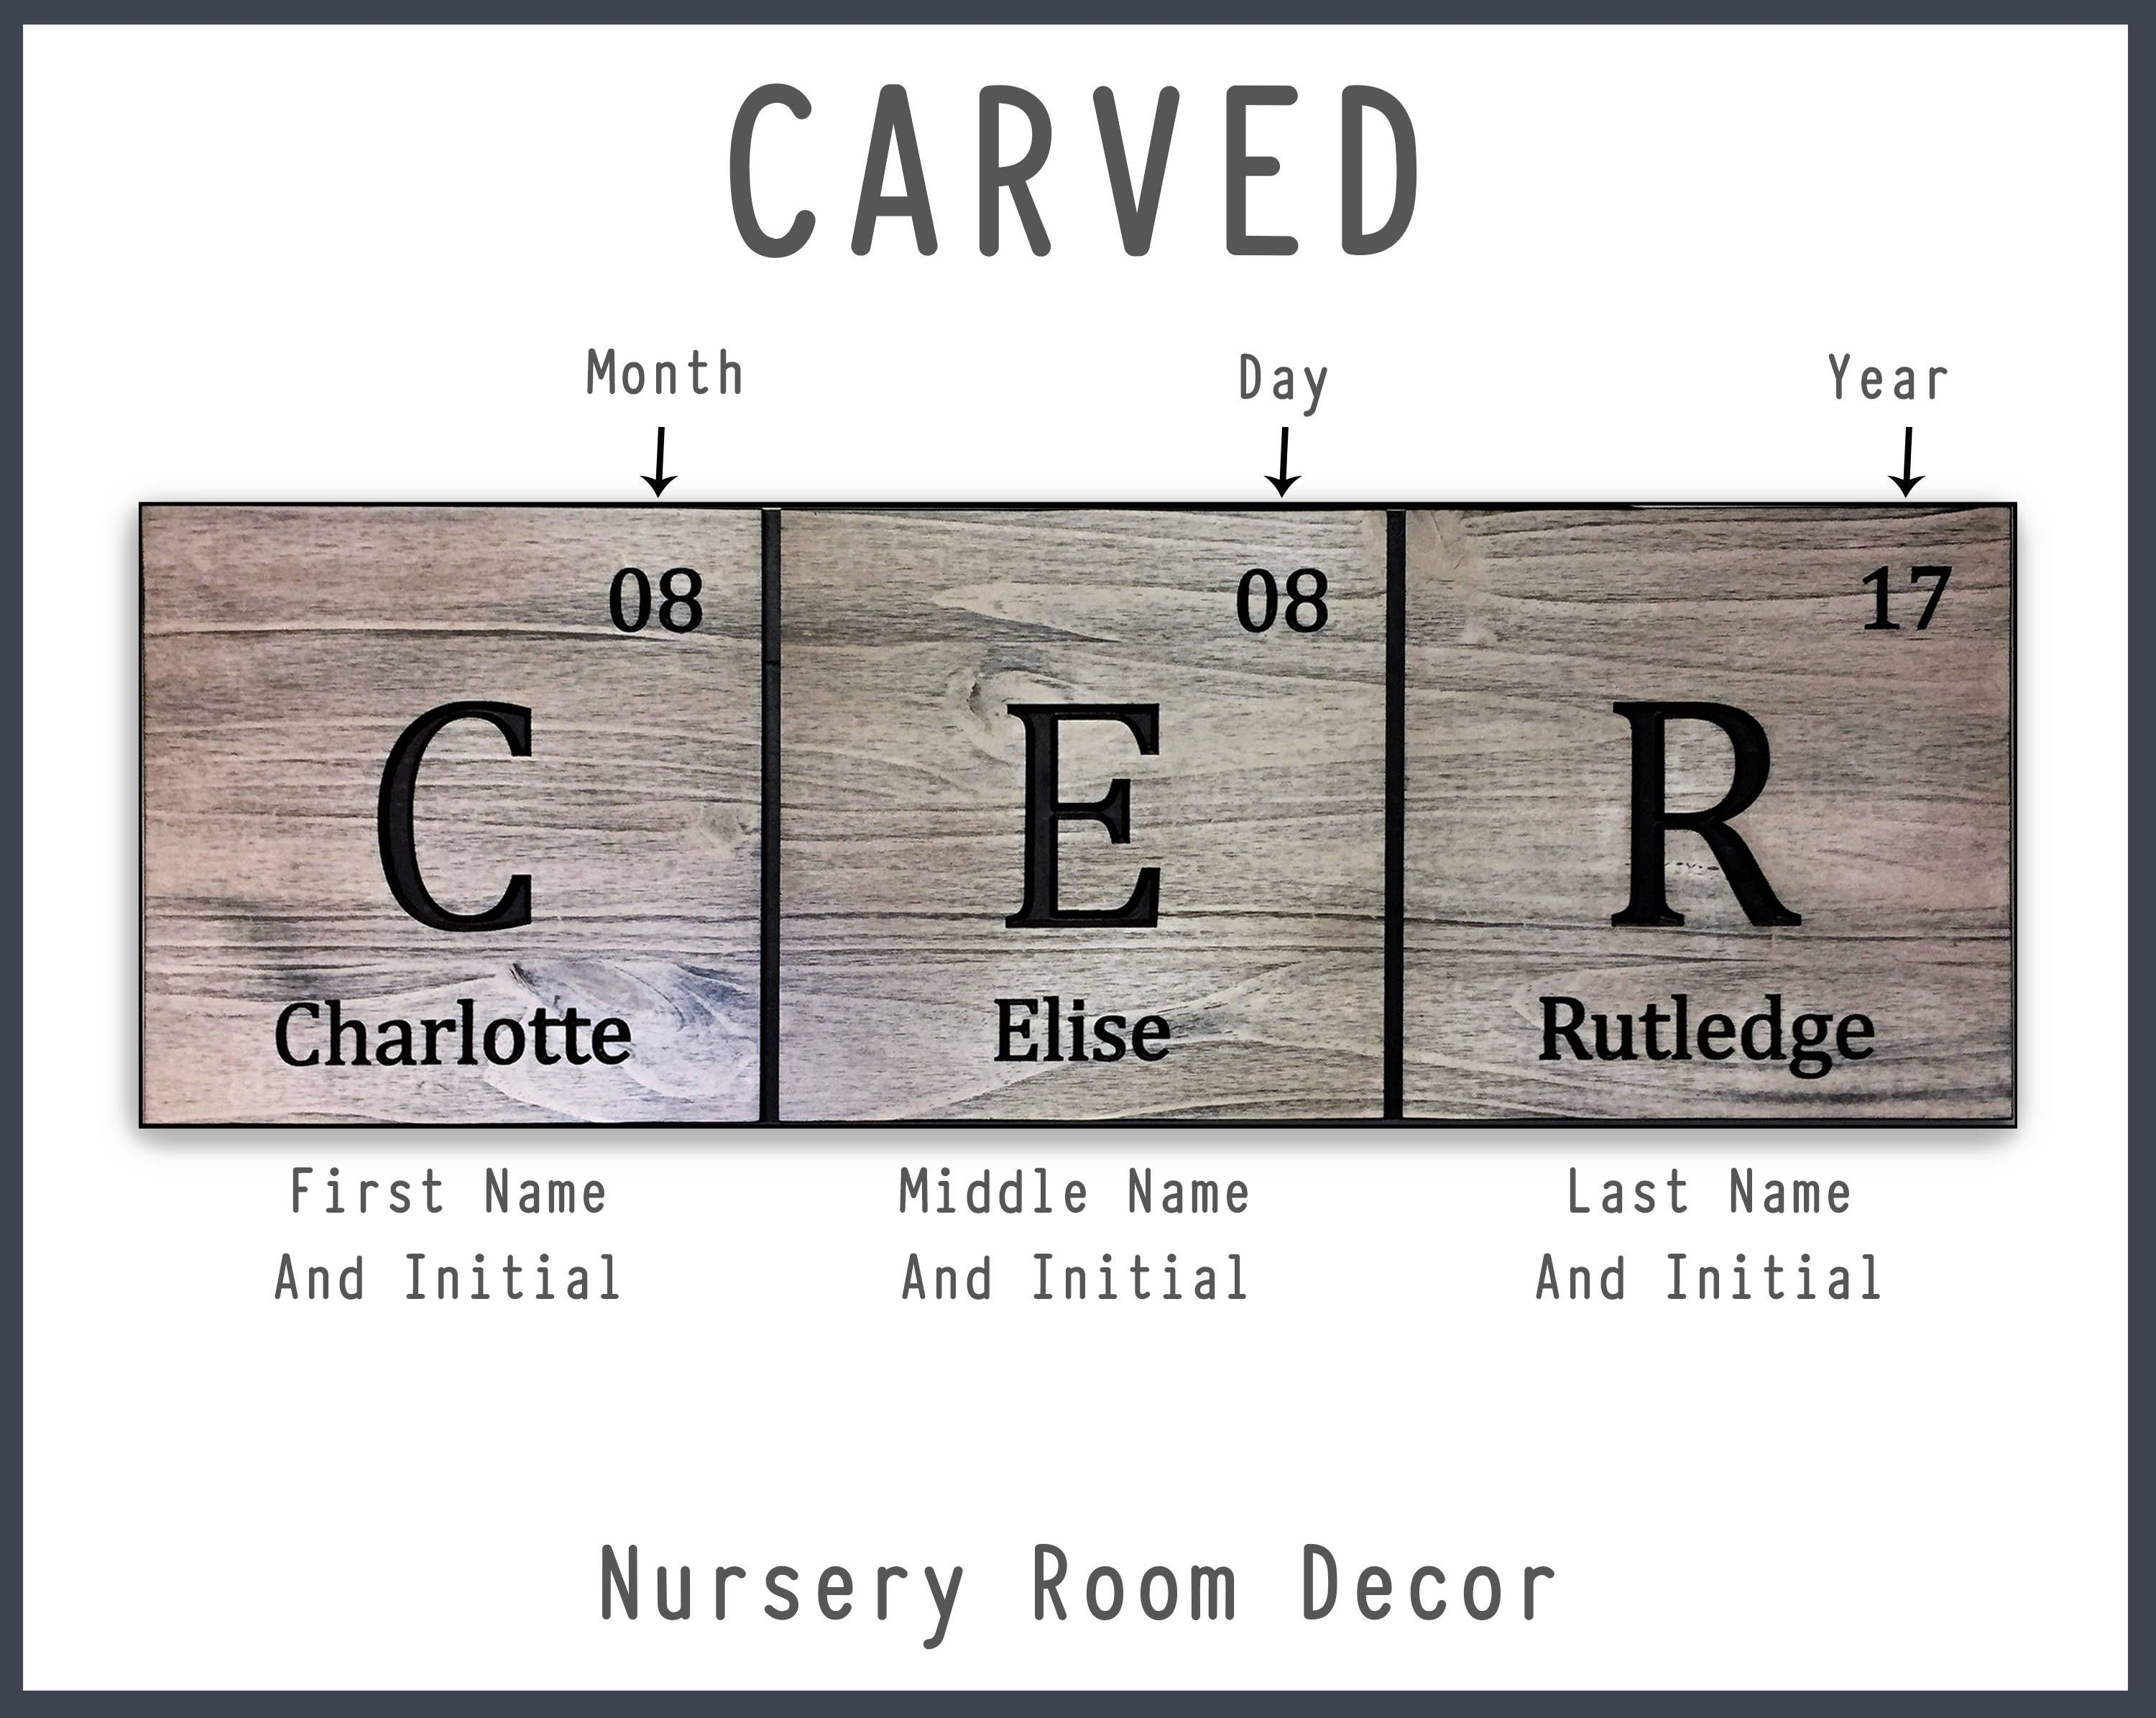 Nursery room decor childrens name sign new gift for baby kids nursery room decor childrens name sign new gift for baby kids room decor rustic vintage carved periodic table elements gift idea urtaz Image collections